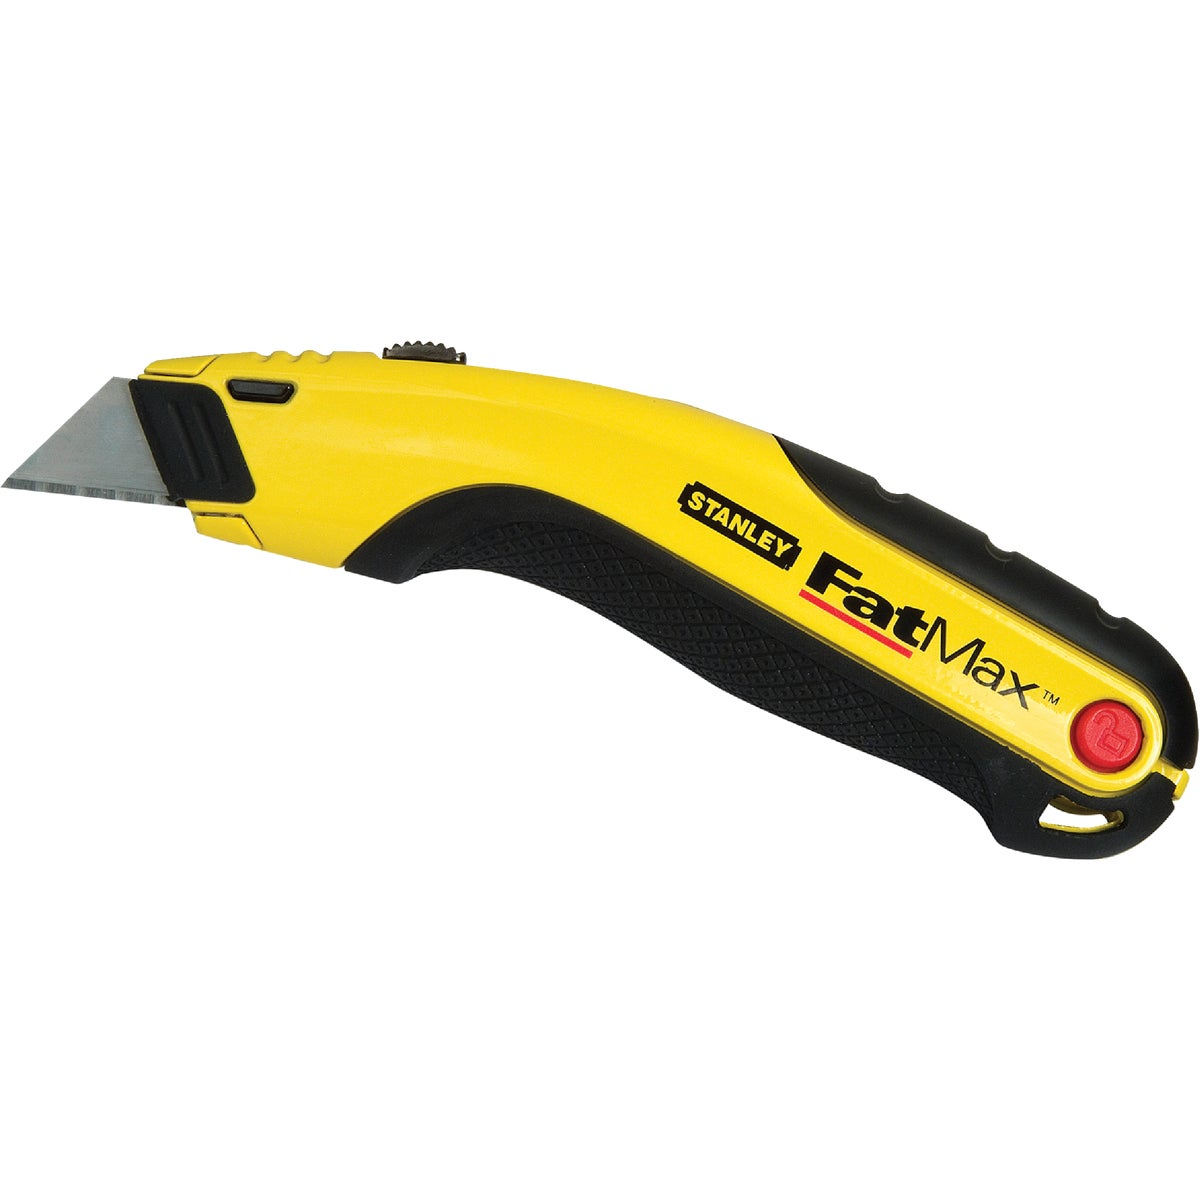 FATMAX UTILITY KNIFE - 10-778 by Stanley Tools